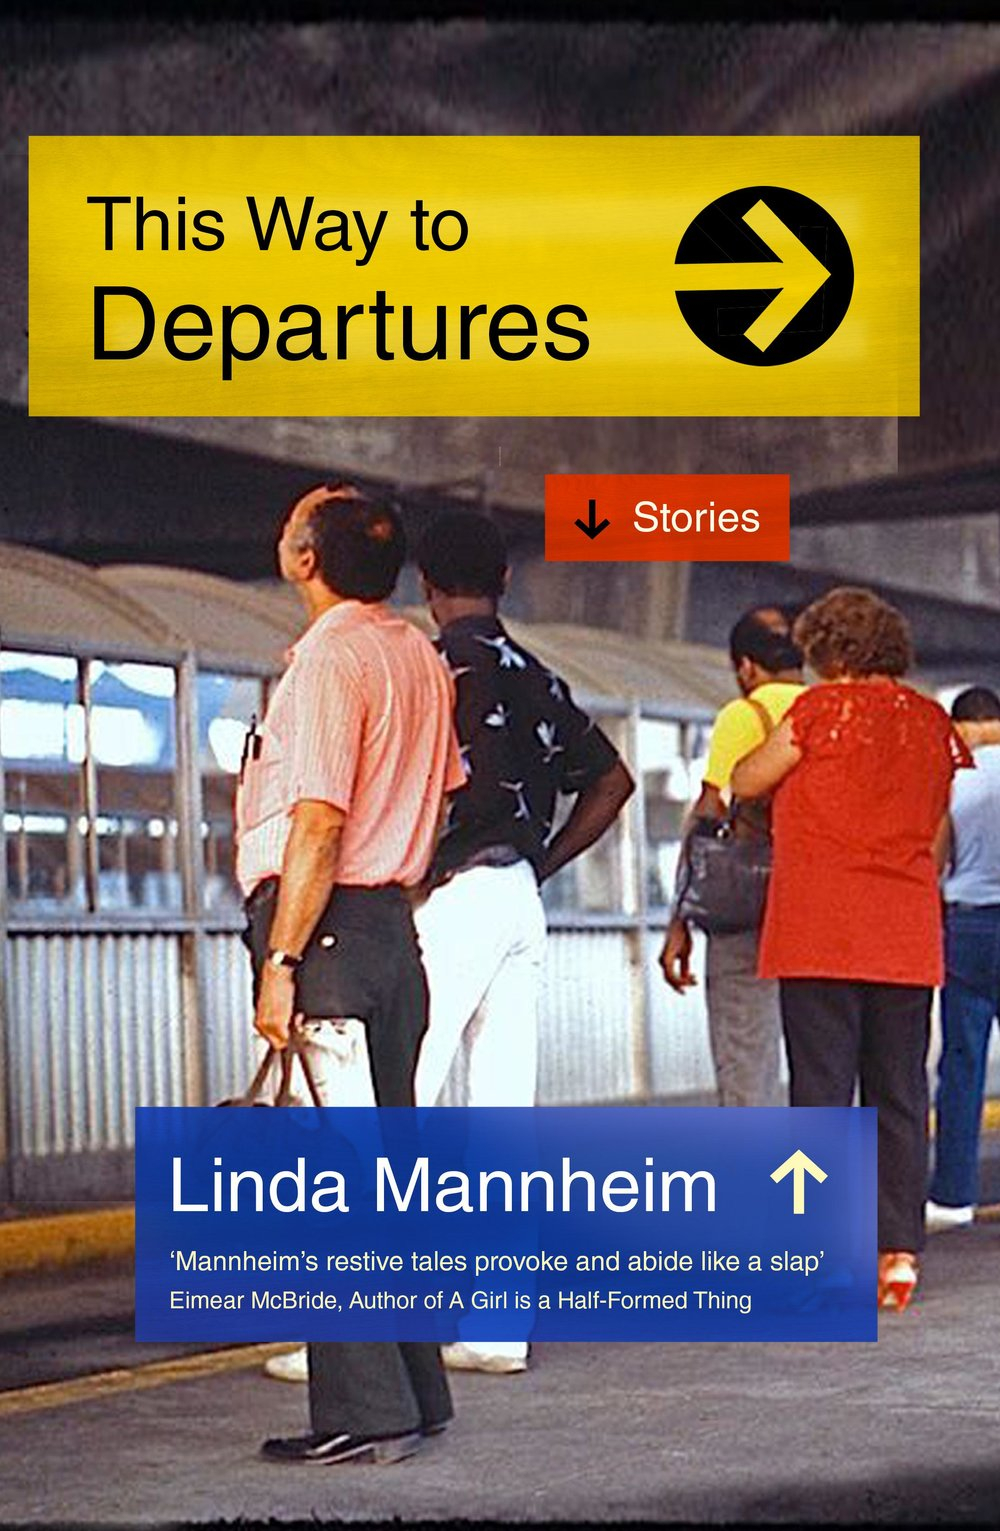 "Out 3 October - What happens when we leave the places we're from? What do we lose, and who do we become, and what parts of our pasts are unshakeable?Linda Mannheim's second short story collection focuses on people who have relocated – both voluntarily and involuntarily.Opening with Miami-set political thriller, 'Noir', these exquisitely rendered set of stories will leave you reeling.This Way to Departures is a deeply affecting portrait of American society and the constant search for a place to call 'home'.""Wherever she goes, and however grim things get, Linda Mannheim retains her compassion and irrepressible curiosity about what makes people do the things they do, and the ways we damage and heal each other.""– Chris Power, author of Mothers"